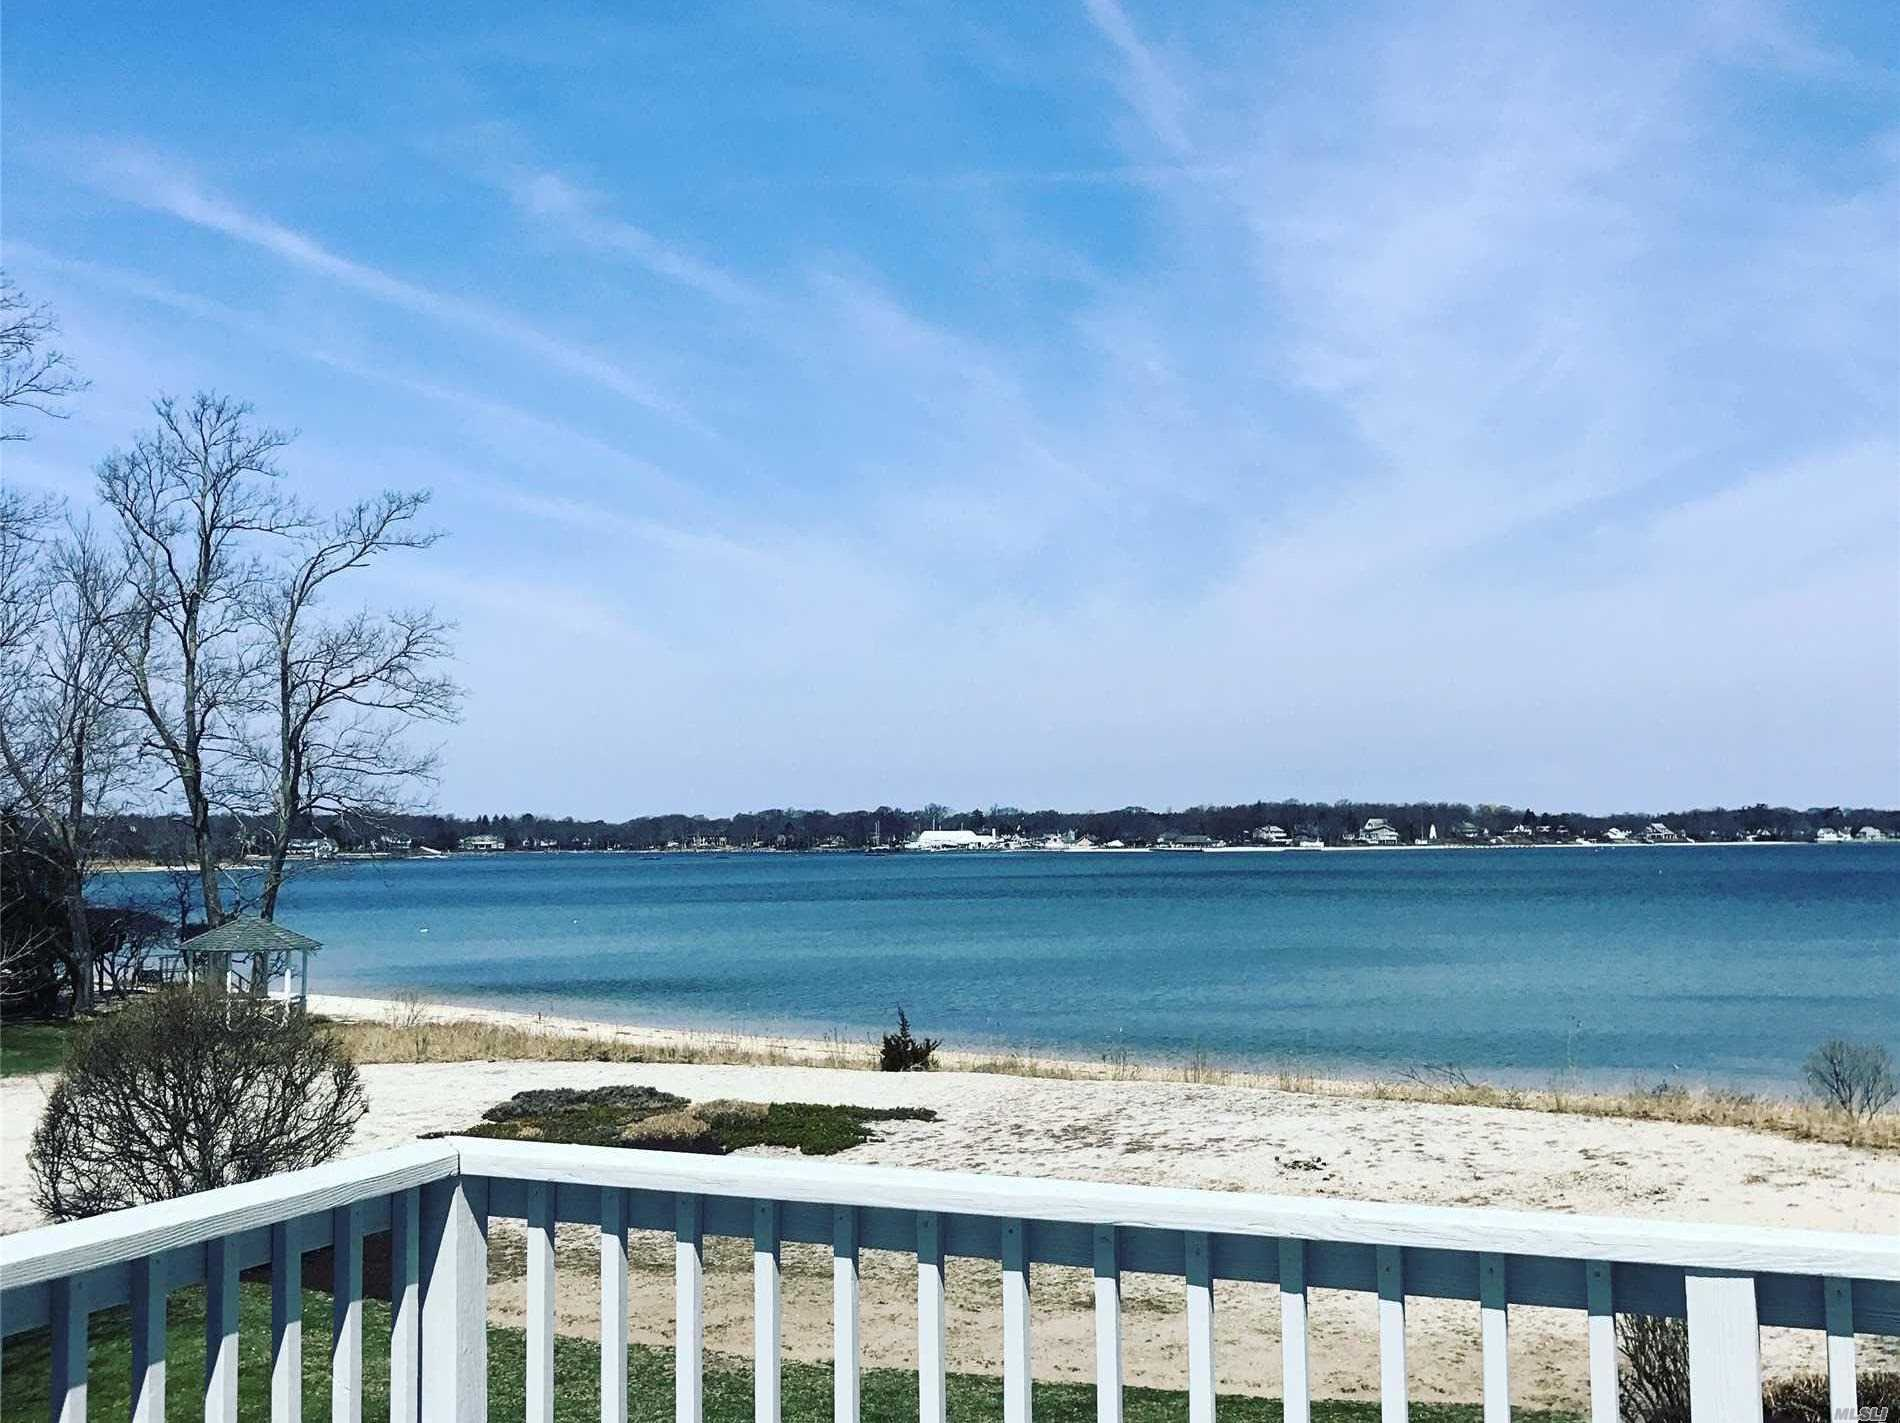 Its all about Location! Stunning Views from this Southold Bayfront Ranch Home with Walk Out Lower Level. Rare Opportunity To Own in Coveted Southold Bayview Neighborhood Near Goose Creek. Open Floor Plan. Gorgeous View from Living Room, Dining Room, and Master Bedroom As well as Downstairs Living Area. Two Level Deck for Entertaining, Lawn and Sandy Beach. Not in Flood Zone. Become Part of this North Fork Community For Generations To Come!